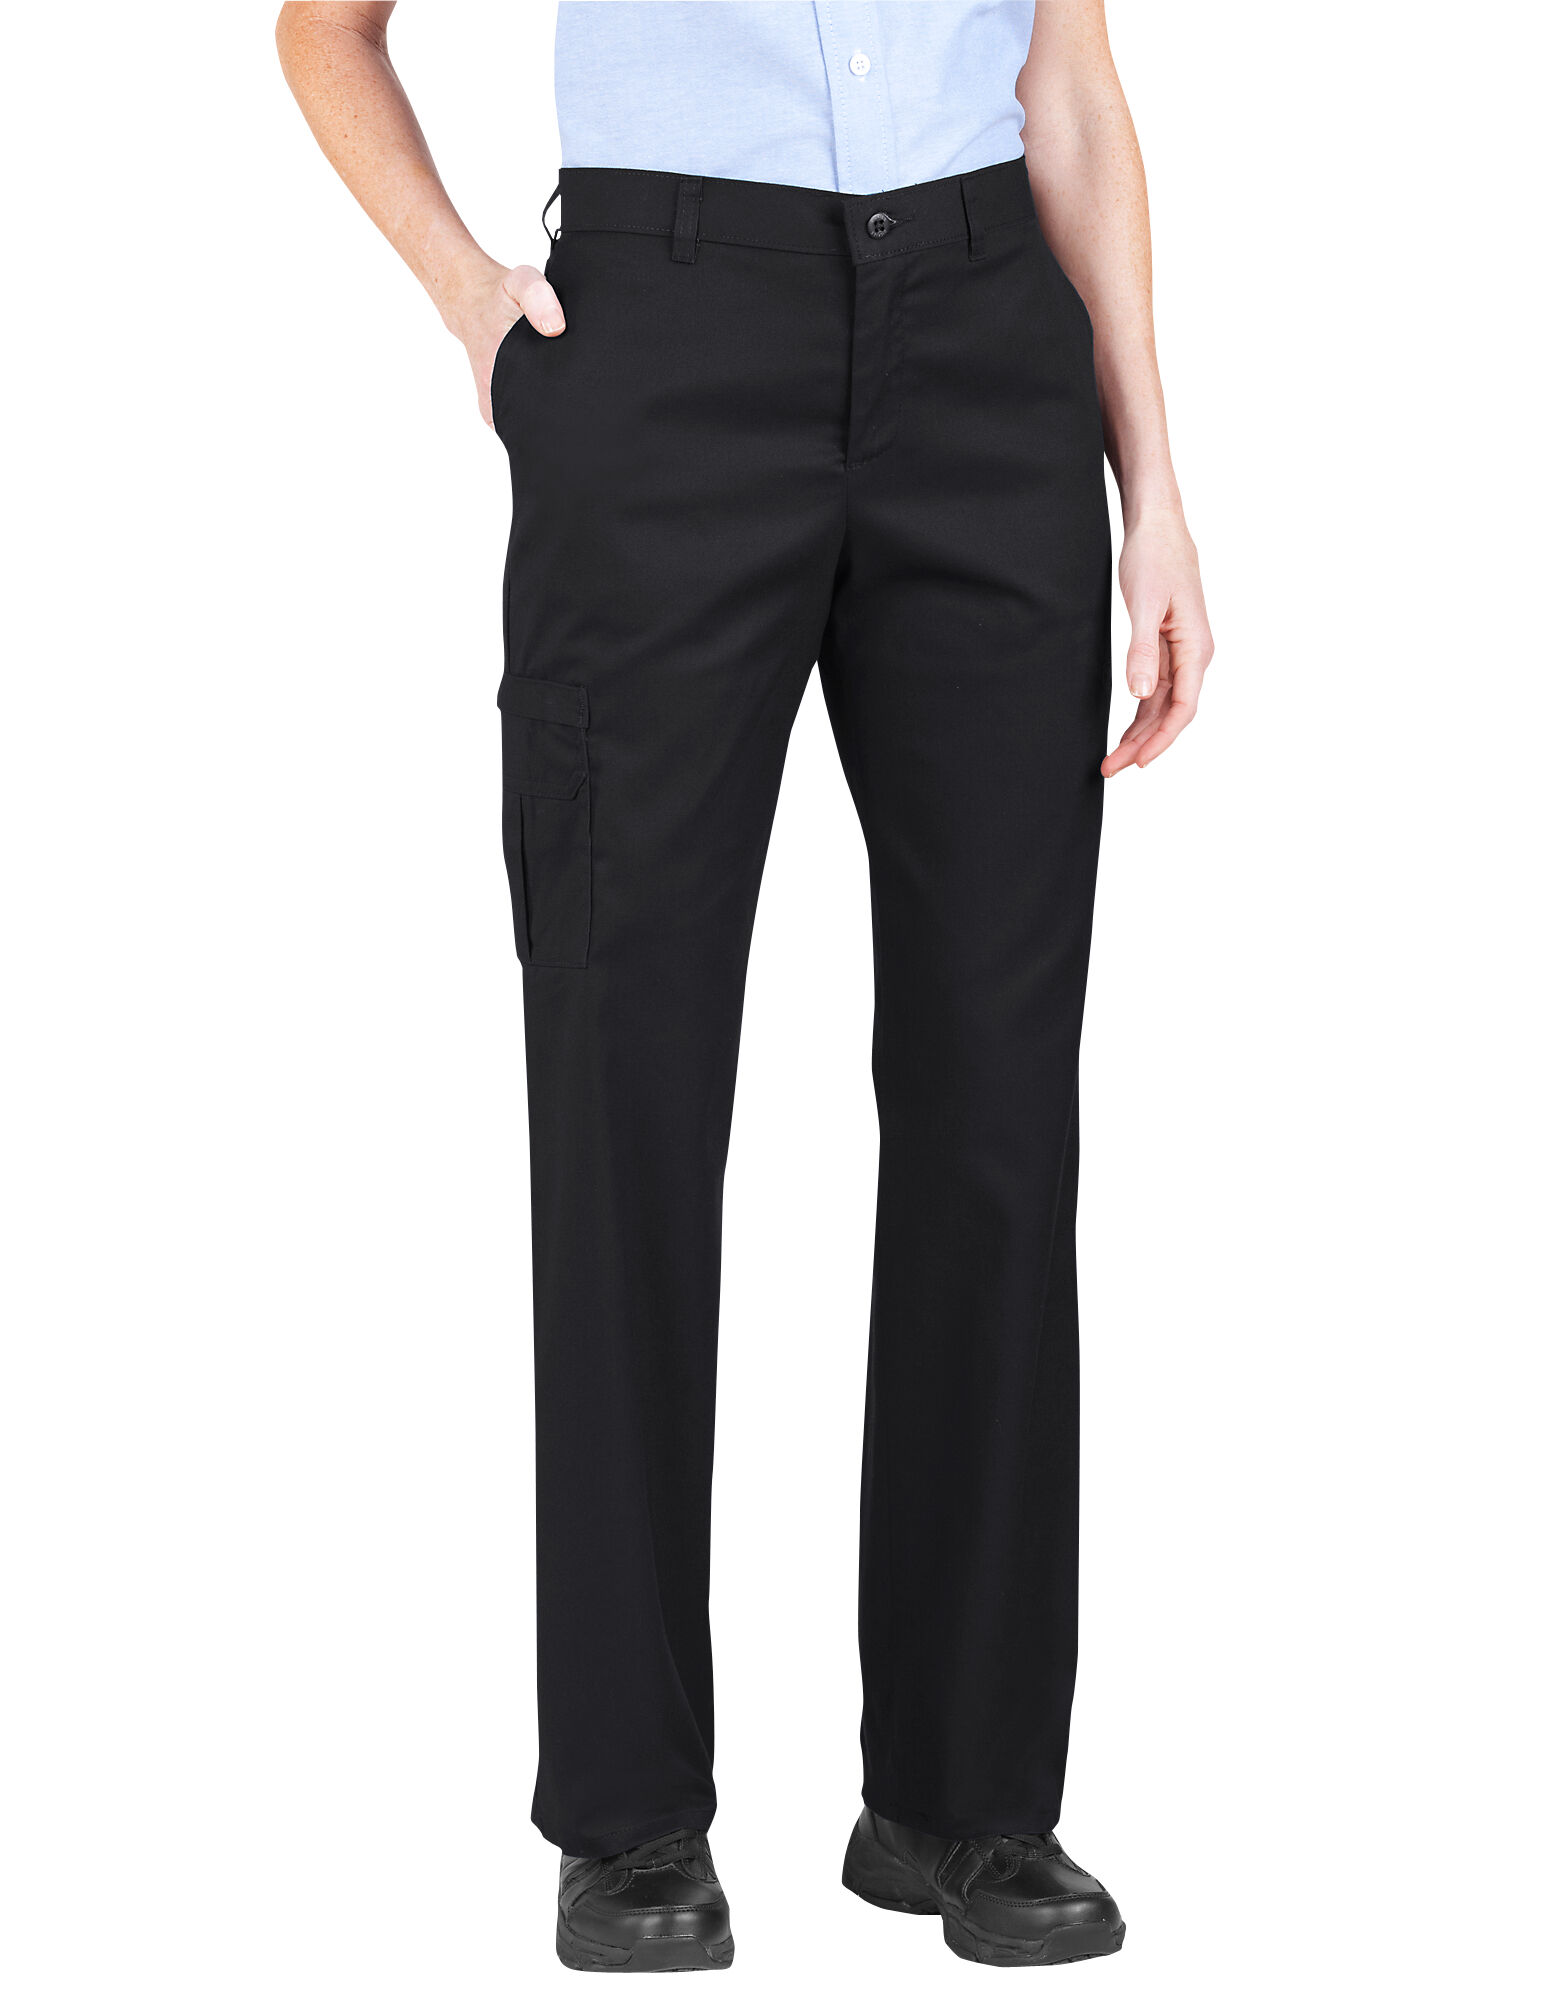 Dickies Women/'s Premium Relaxed Straight Cargo Pan Choose SZ//color